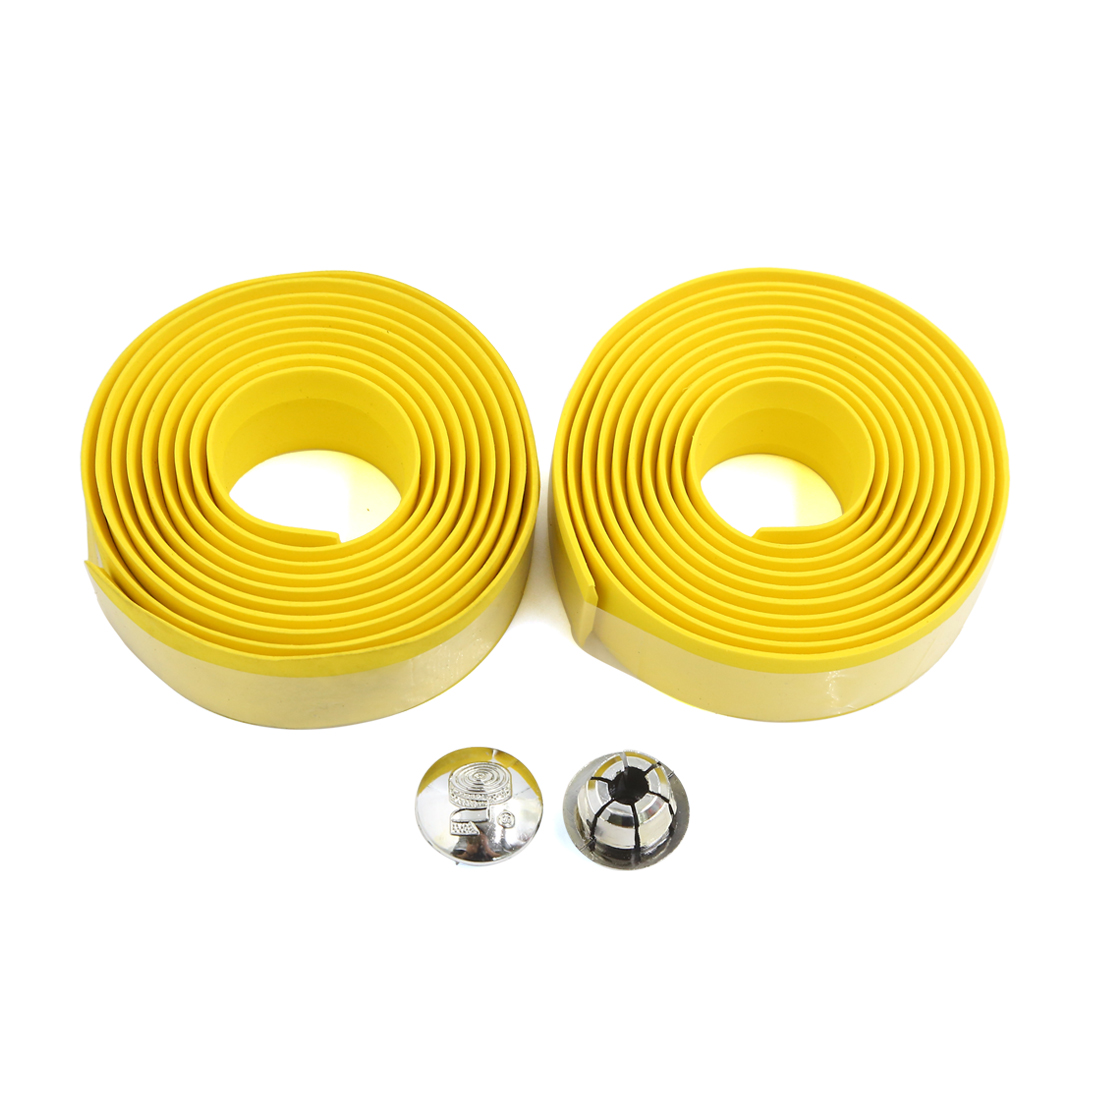 2pcs Lightweight Yellow Bike Bicycle Handlebars Tape Wrap w 2 Bar Connector